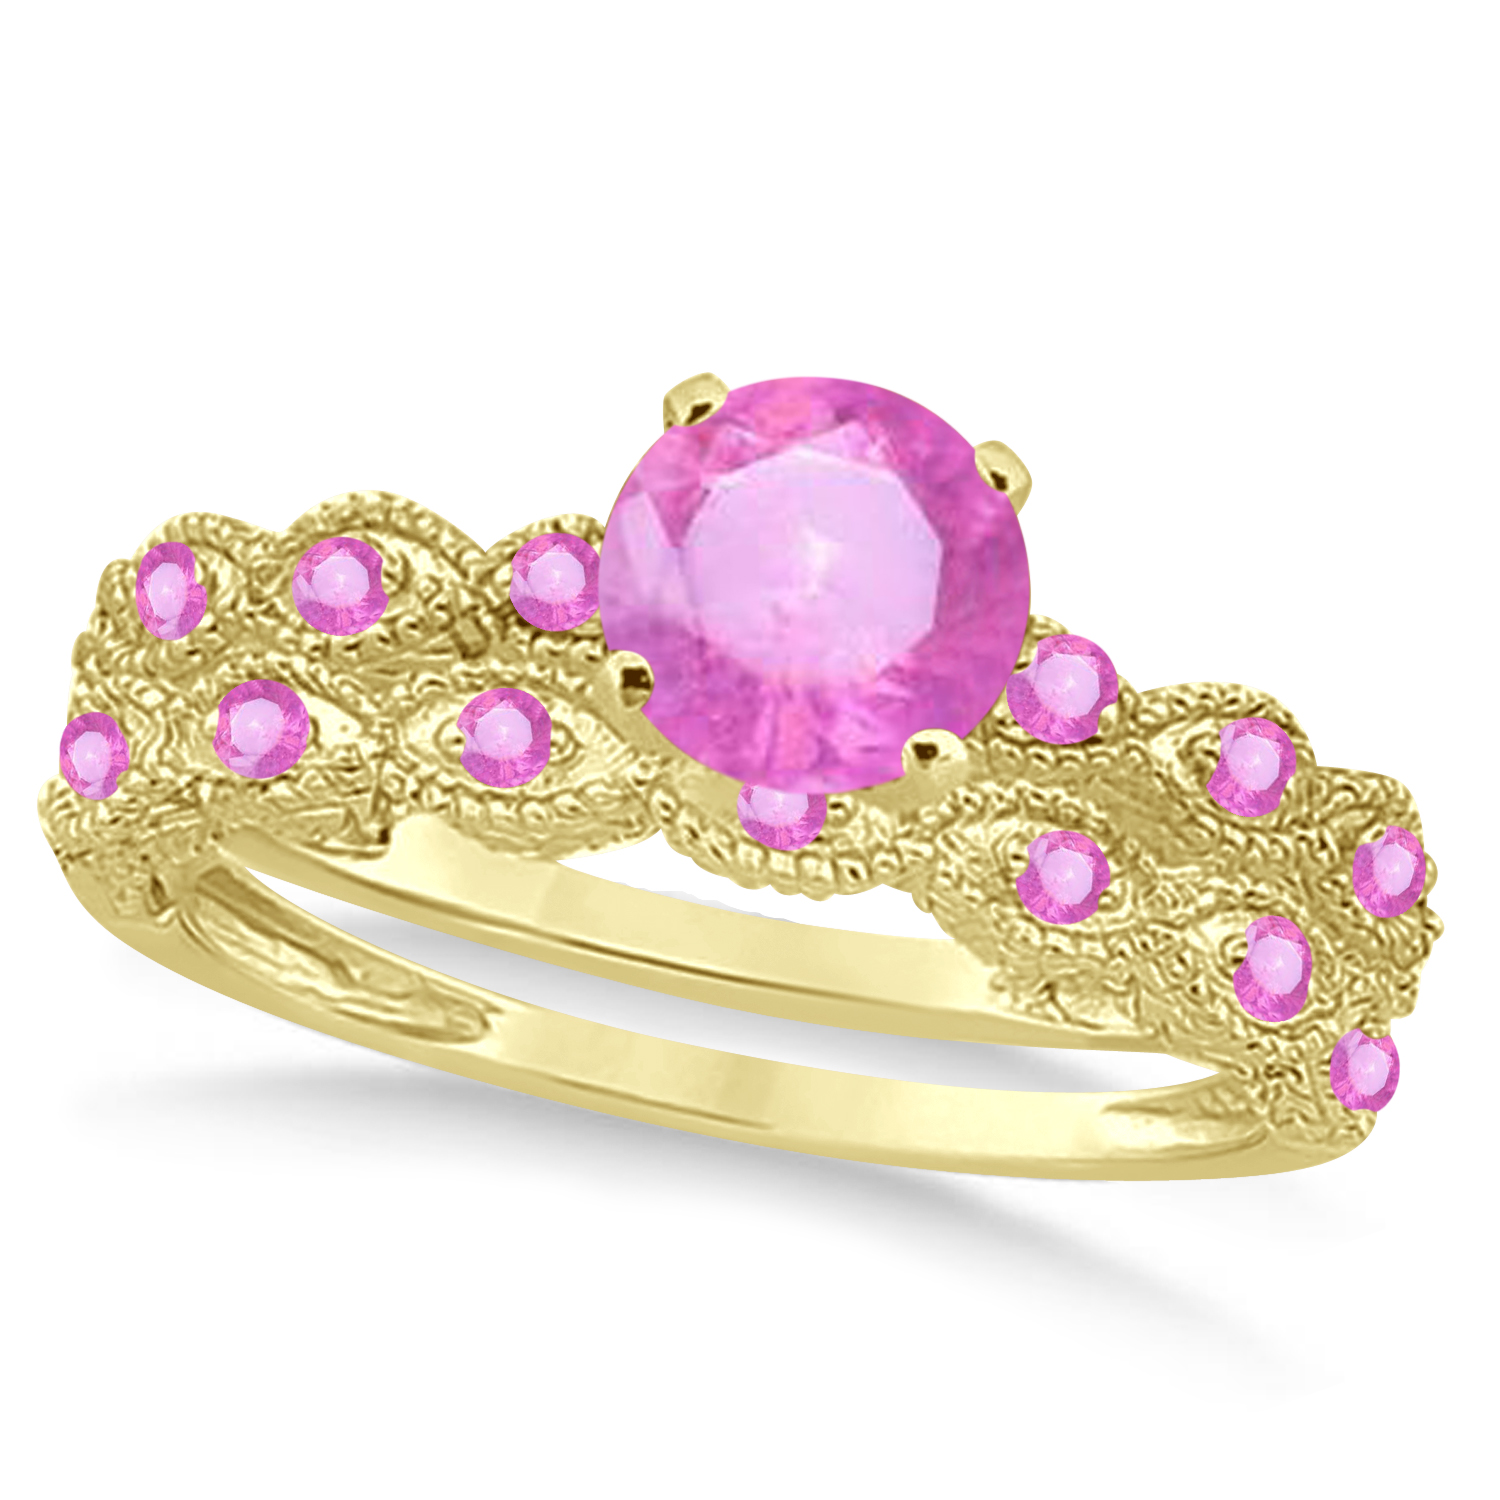 Vintage Pink Sapphire Engagement Ring Bridal Set 18k Yellow Gold 1.36ct